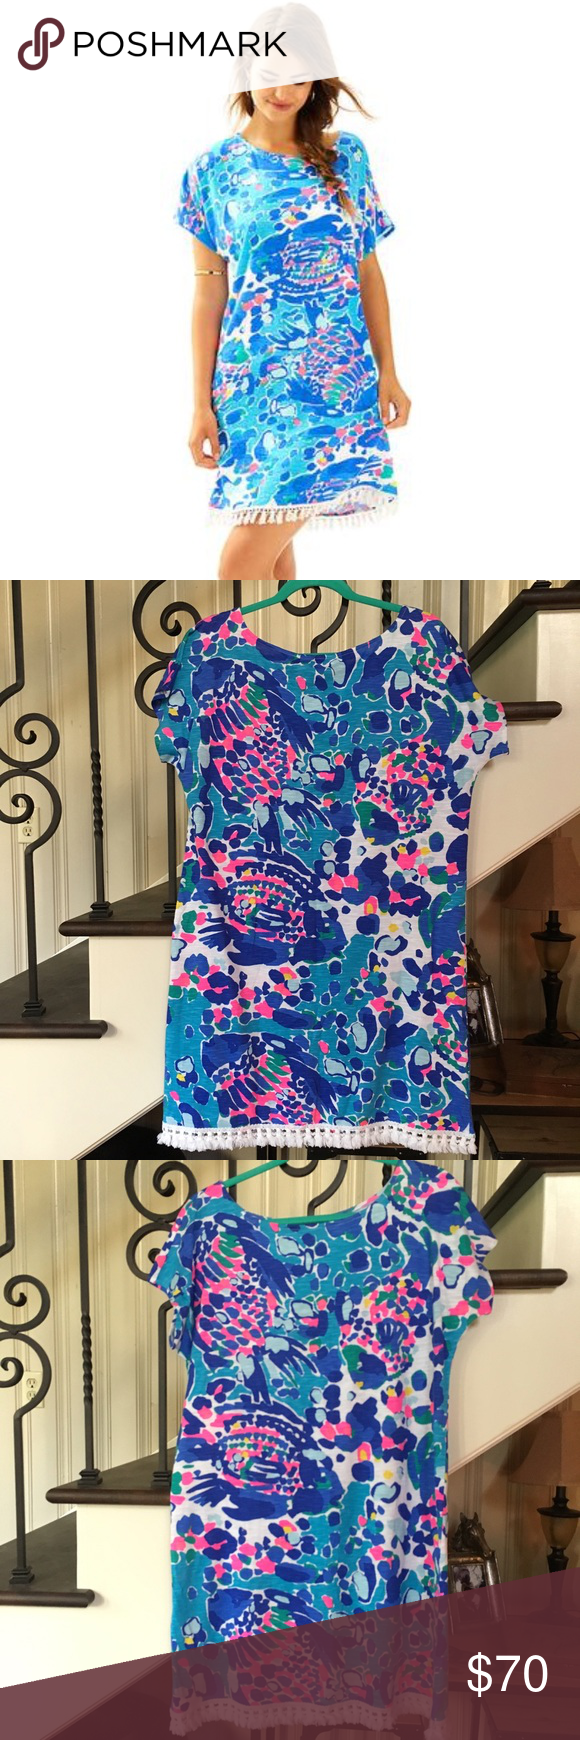 """New Lilly Pulitzer Tilla Dress Size Small New Lilly Pulitzer Tilla Dress Size Small Hit the Spot pattern. Gorgeous colors, very colorful! Tilla Dress - Lilly Pulitzer  We love an easy tunic dress for a weekend away. The Tilla Dress is printed with a fringe hemline, and great for wearing on and off the beach.  Printed Easy Tunic Dress With Fringe Details At Hemline. 19"""" From Natural Waist To Hem. Cotton Modal Slub (60% Cotton, 40% Modal). Machine Wash Cold. Inside Out. With Like Colors…"""